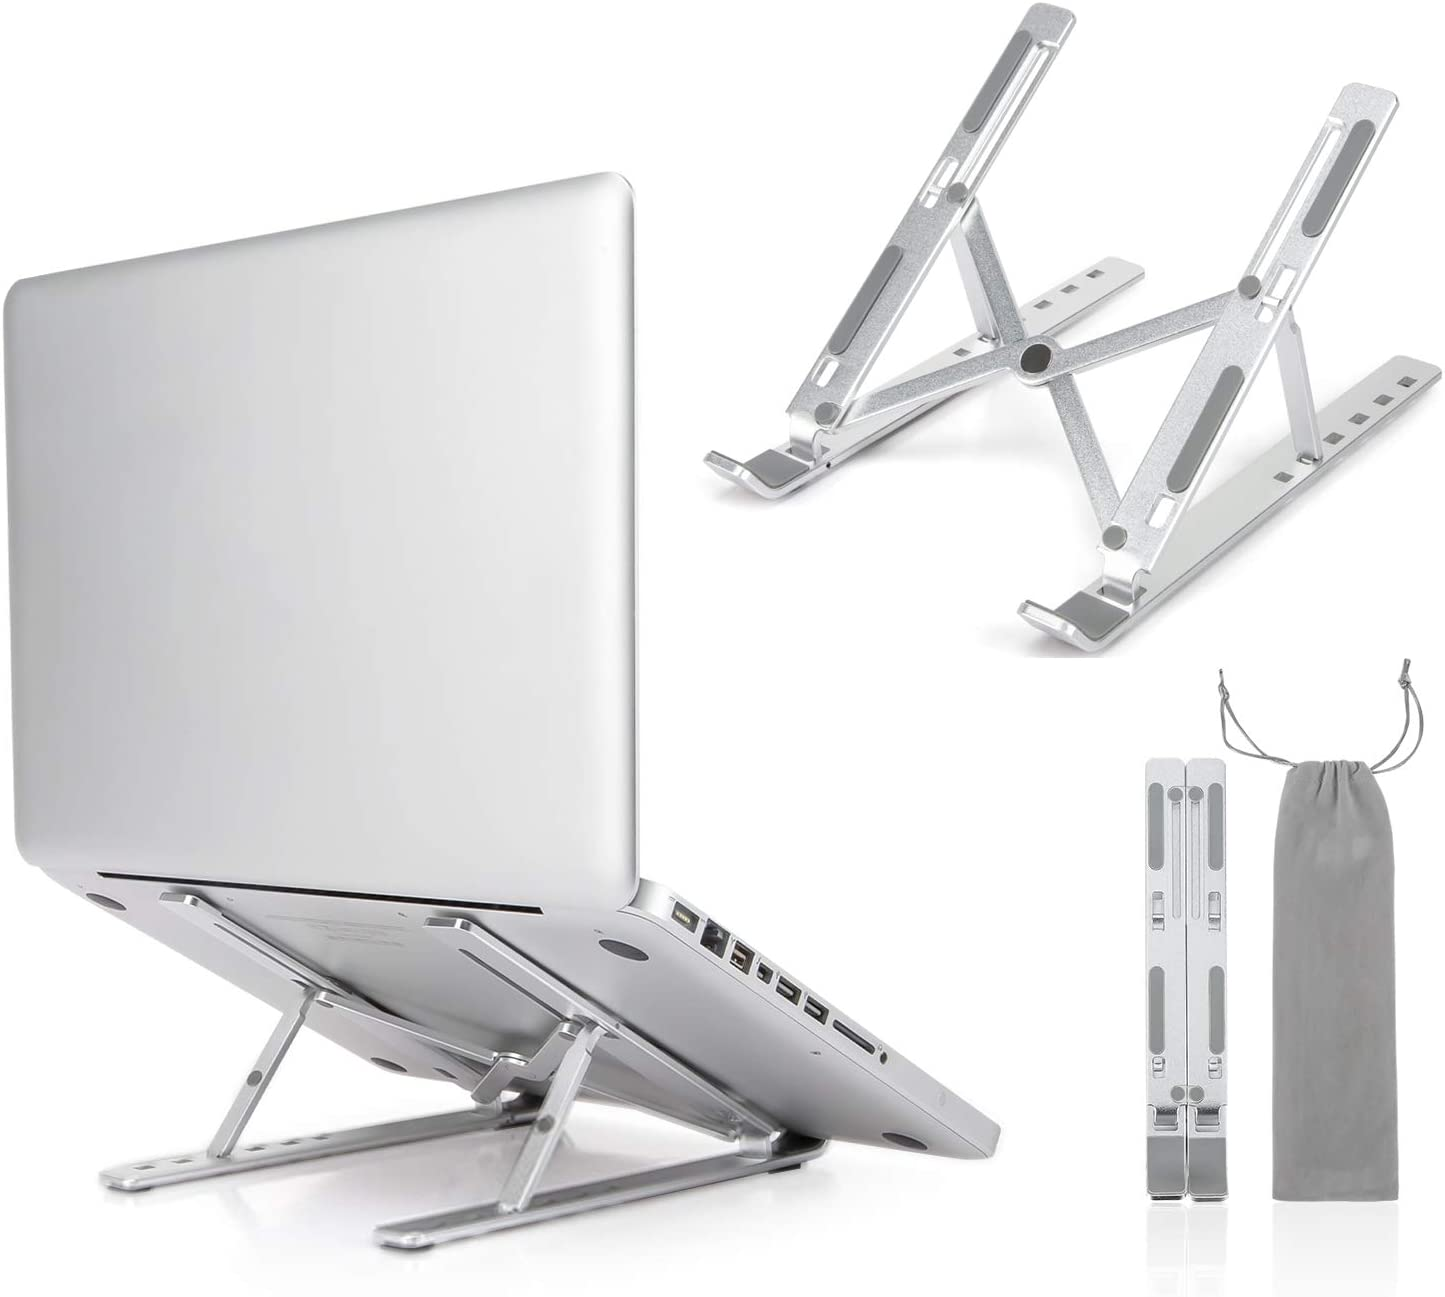 Foldable Laptop Safety and trust 1 year warranty Stand Portable Computer Adjustable Hol Aluminum